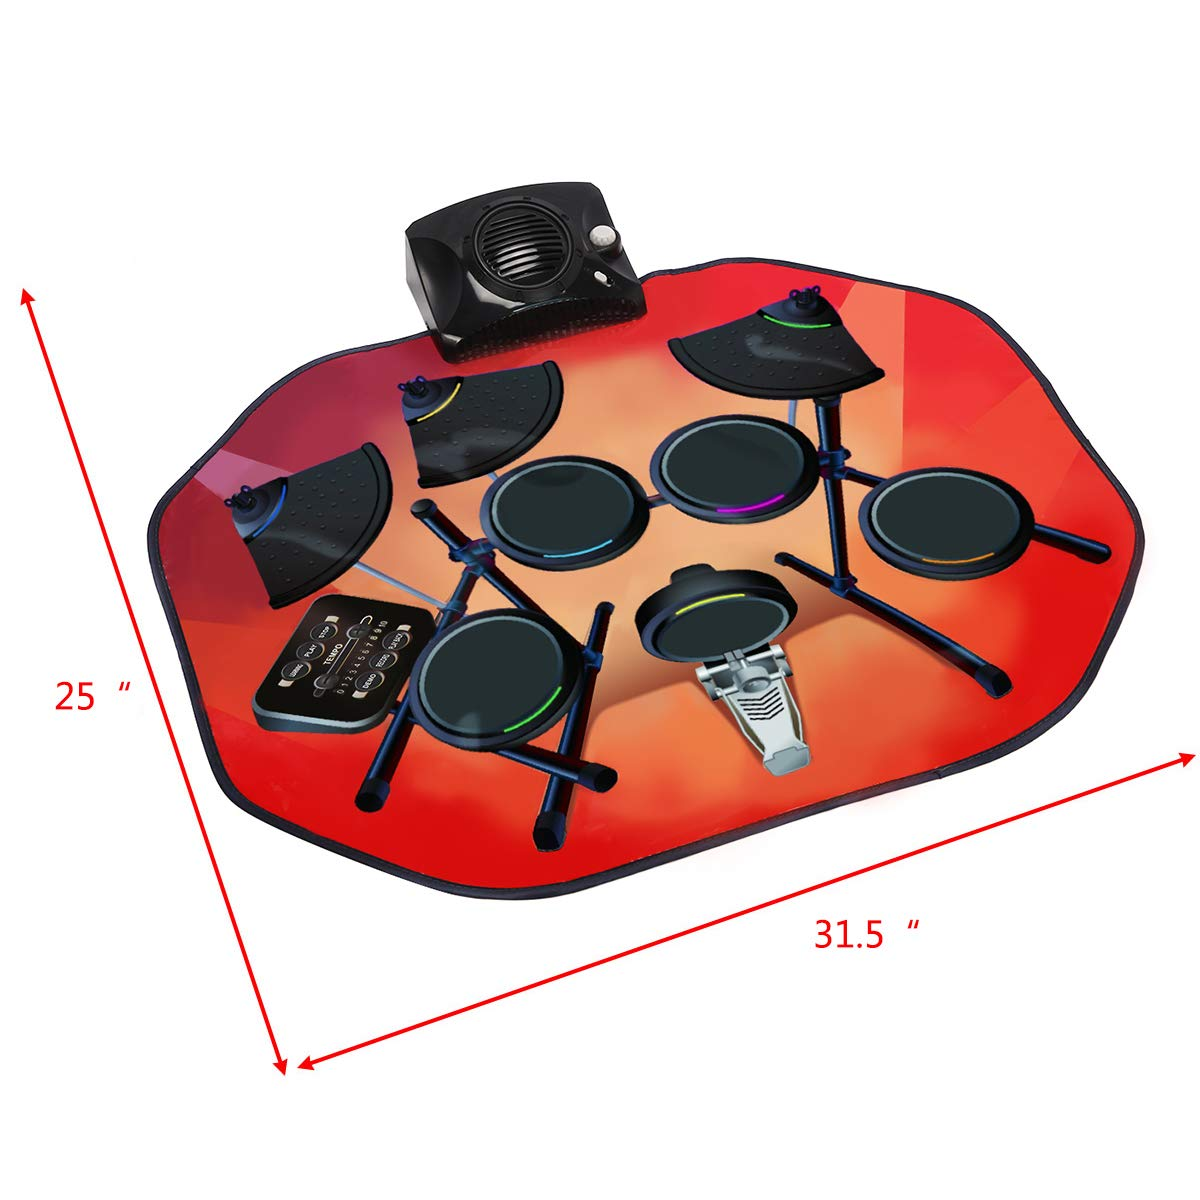 Costzon Electronic Drum Mat, 8 Keys Glowing Music Mat with LED Lights,MP3 Cable, Drumsticks, Support Play - Study-Record - Playback - Demo 5 Modes, Volume Control by Costzon (Image #6)